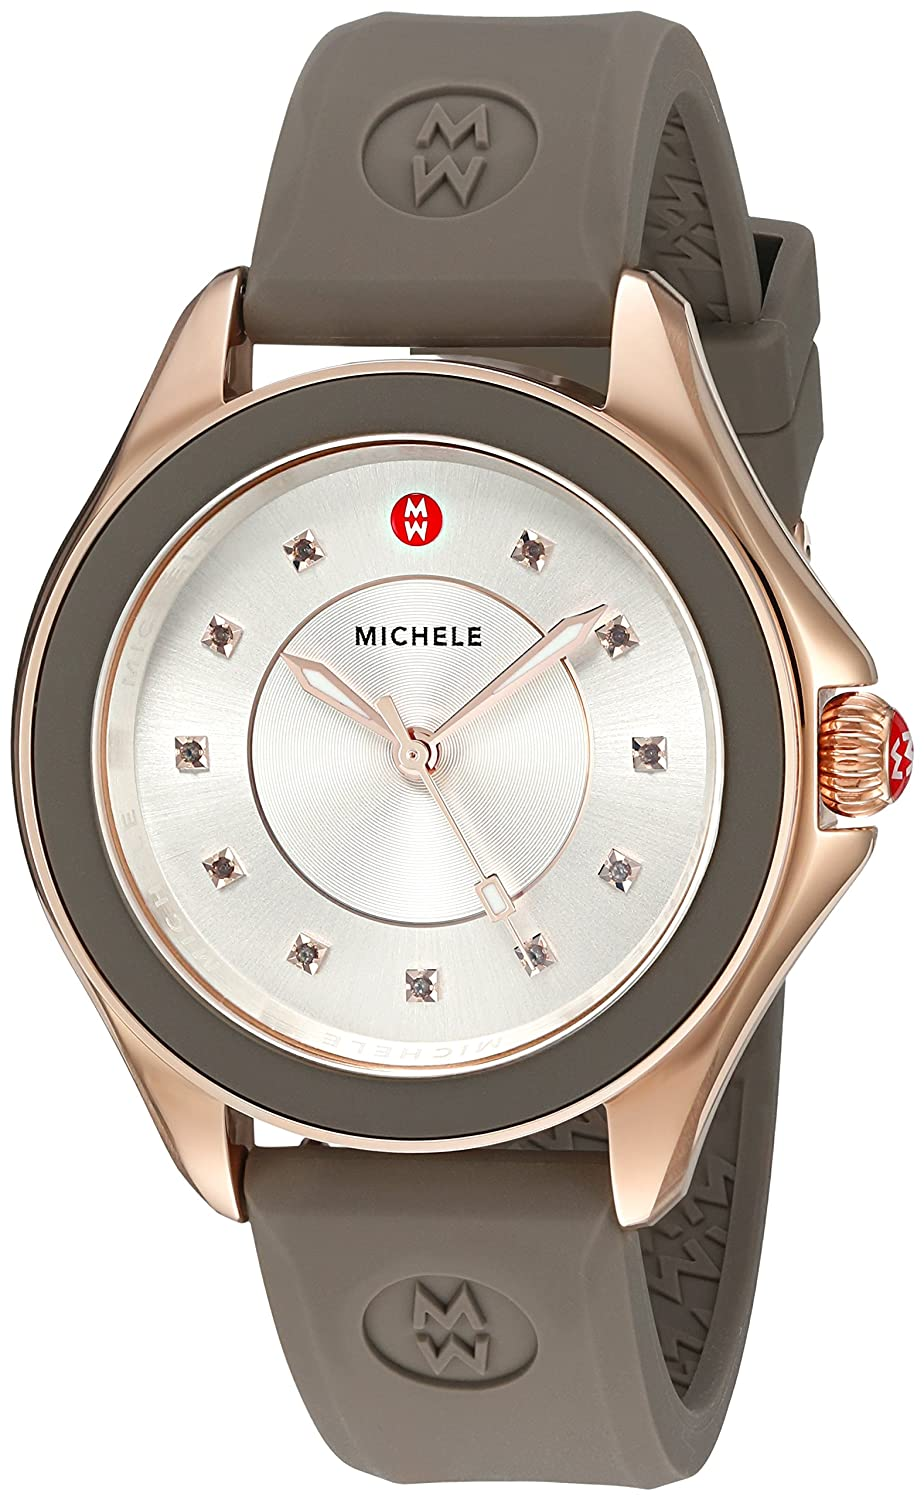 MICHELE Women s Cape Quartz Stainless Steel and Silicone Dress Watch, Color Brown Model MWW27A000014